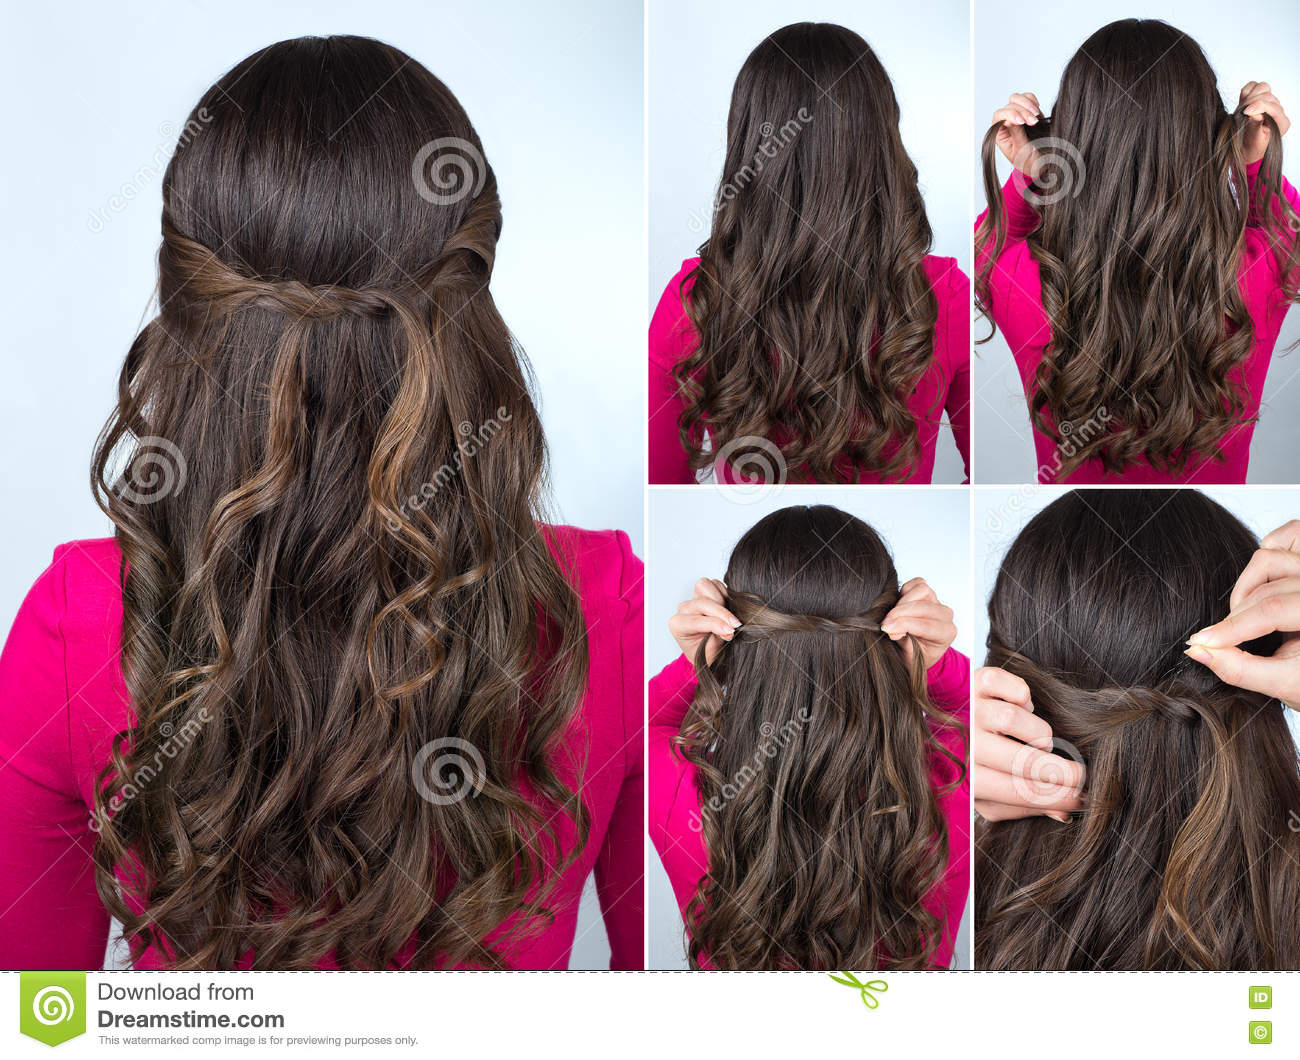 Knotted Hairstyle On Curly Hair Tutorial Stock Photo Image Of